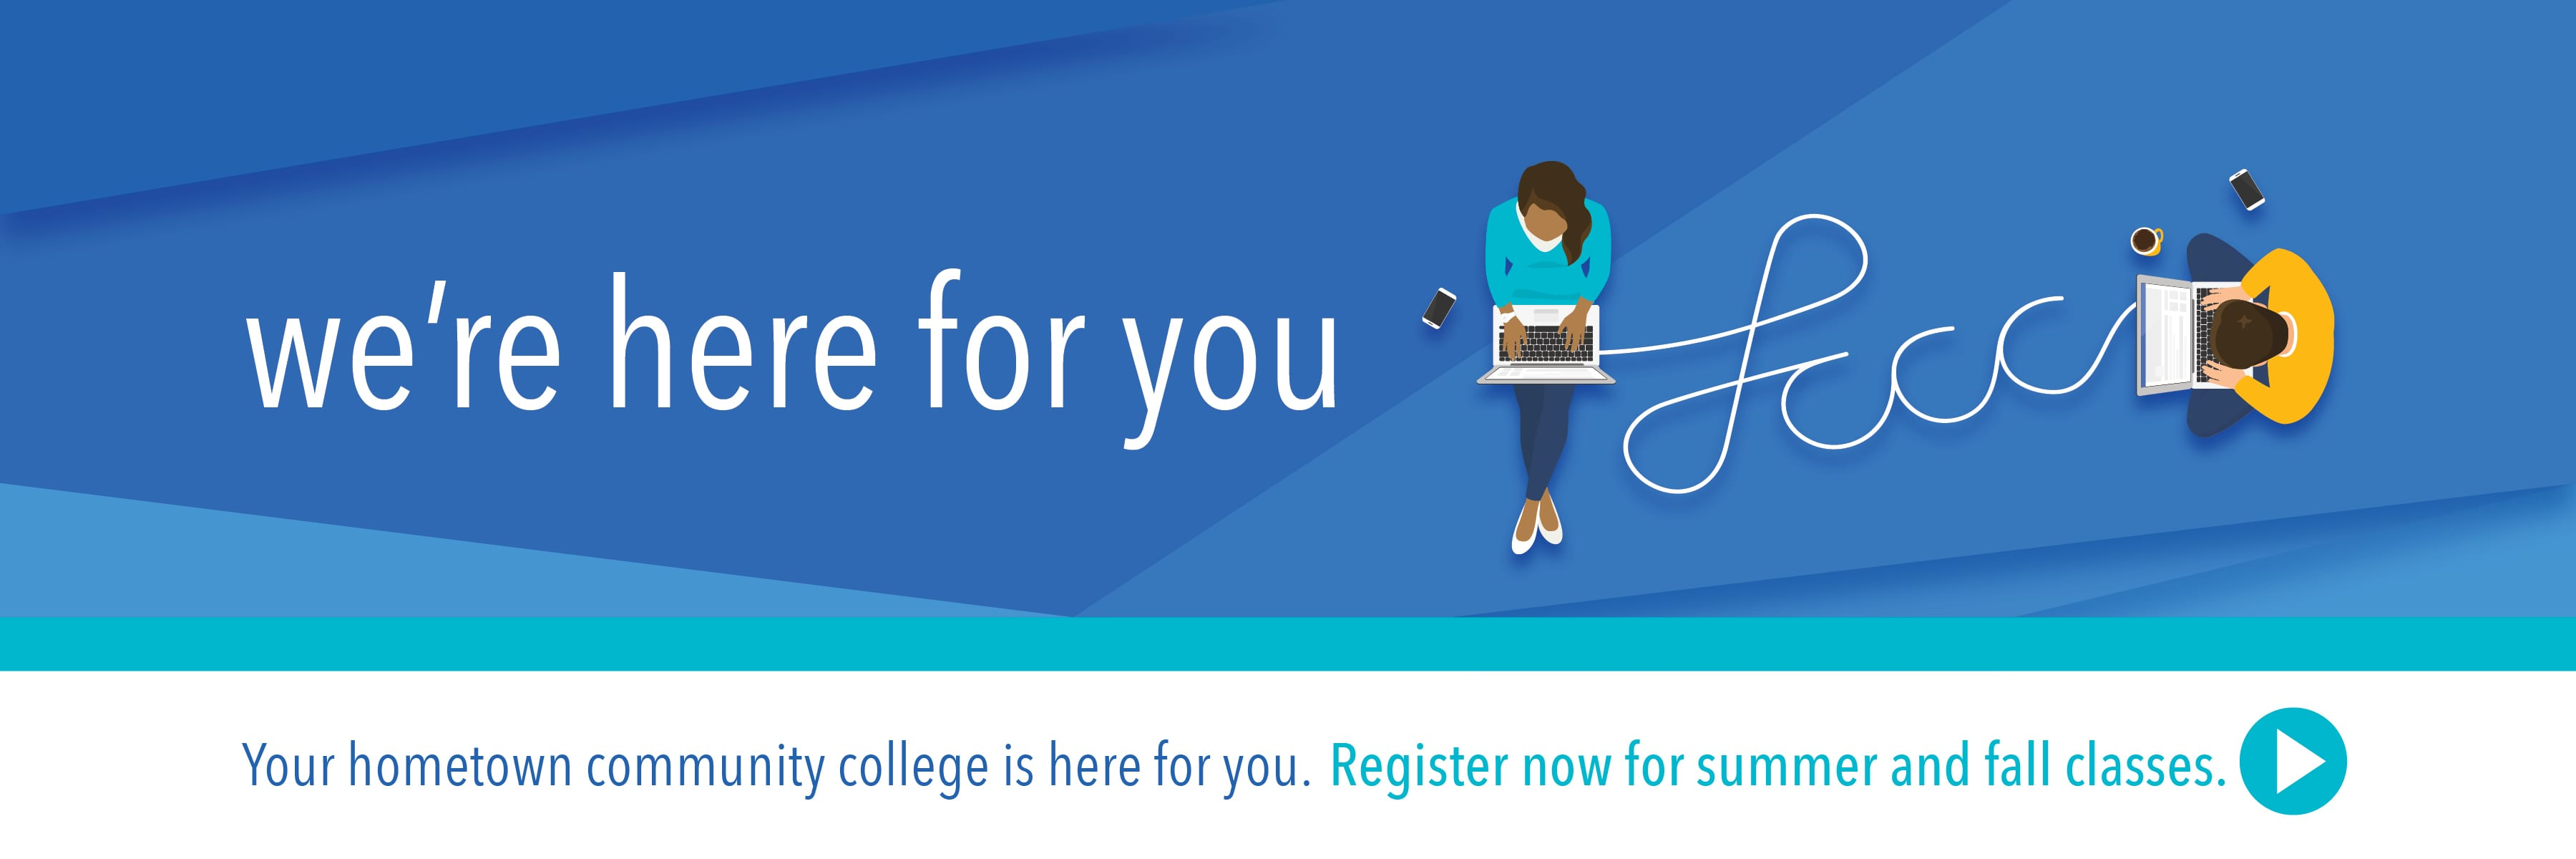 We're Here for you. Your hometown community college is here for you. Register now for summer and fall classes.